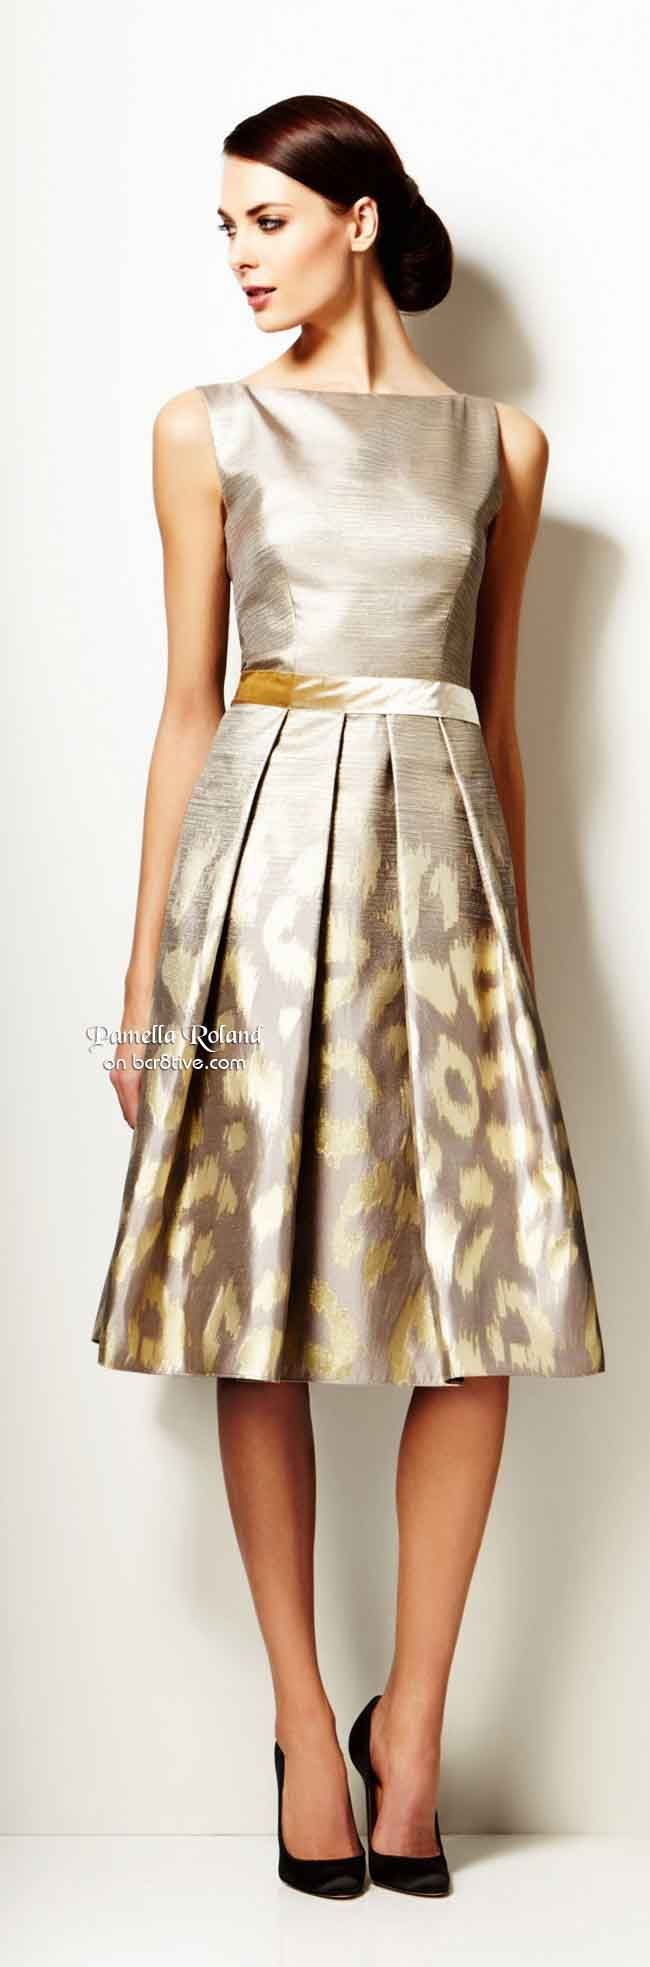 Pamella Roland Pre Fall 2014 We have a dress almost just like this at ReChic in Wilson, NC